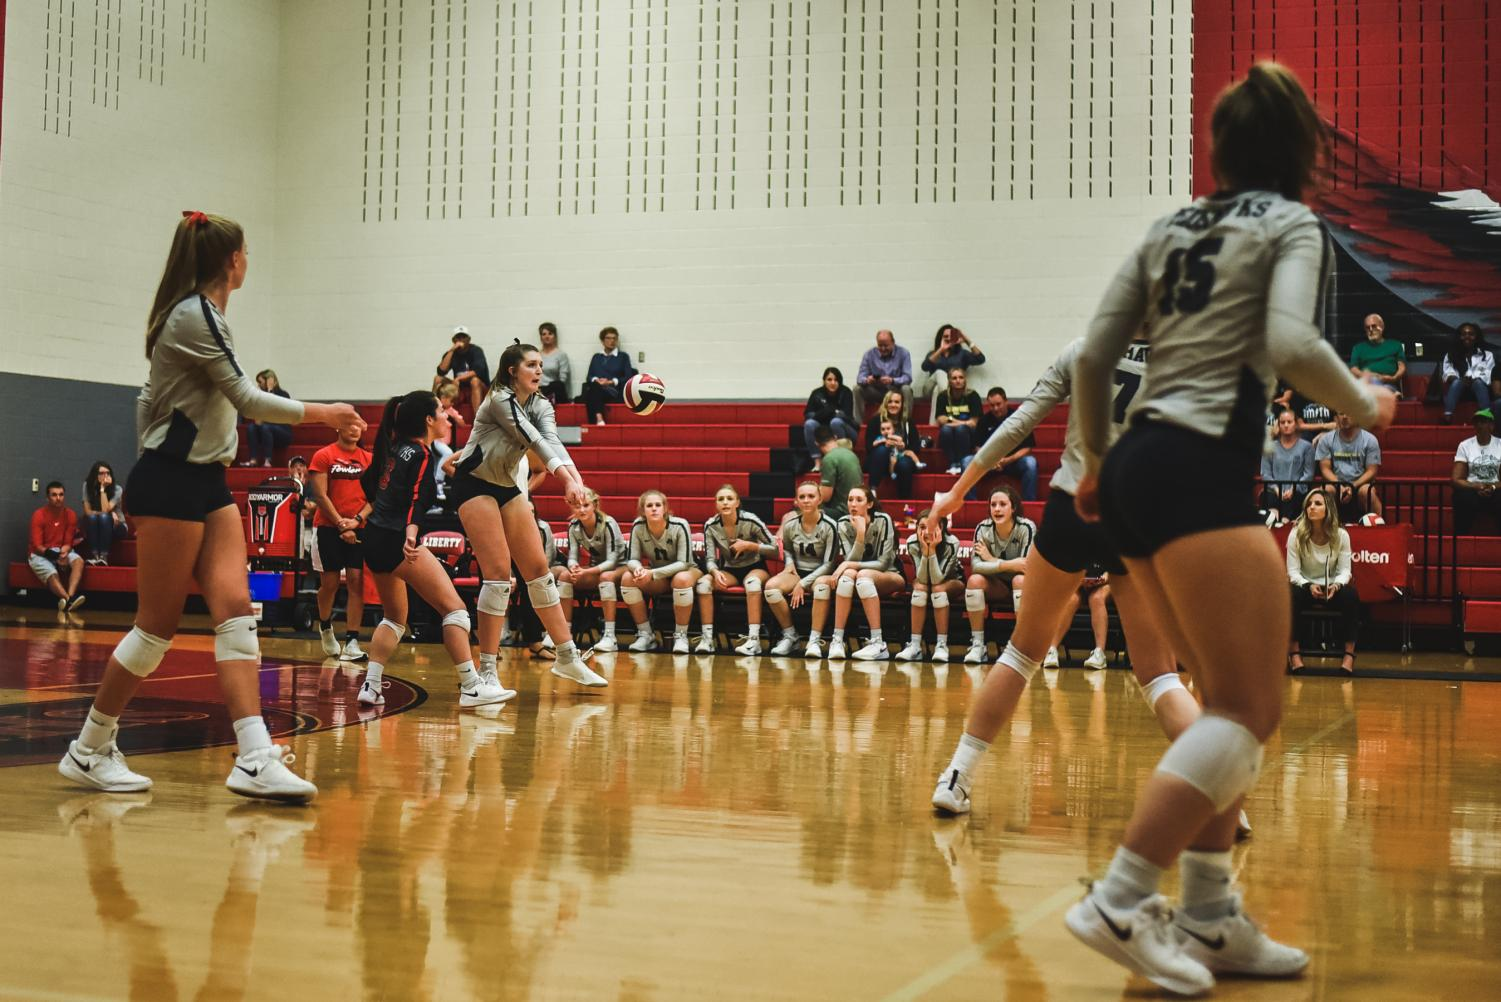 With a district championship on the line, volleyball competes in their last home game against Heritage.